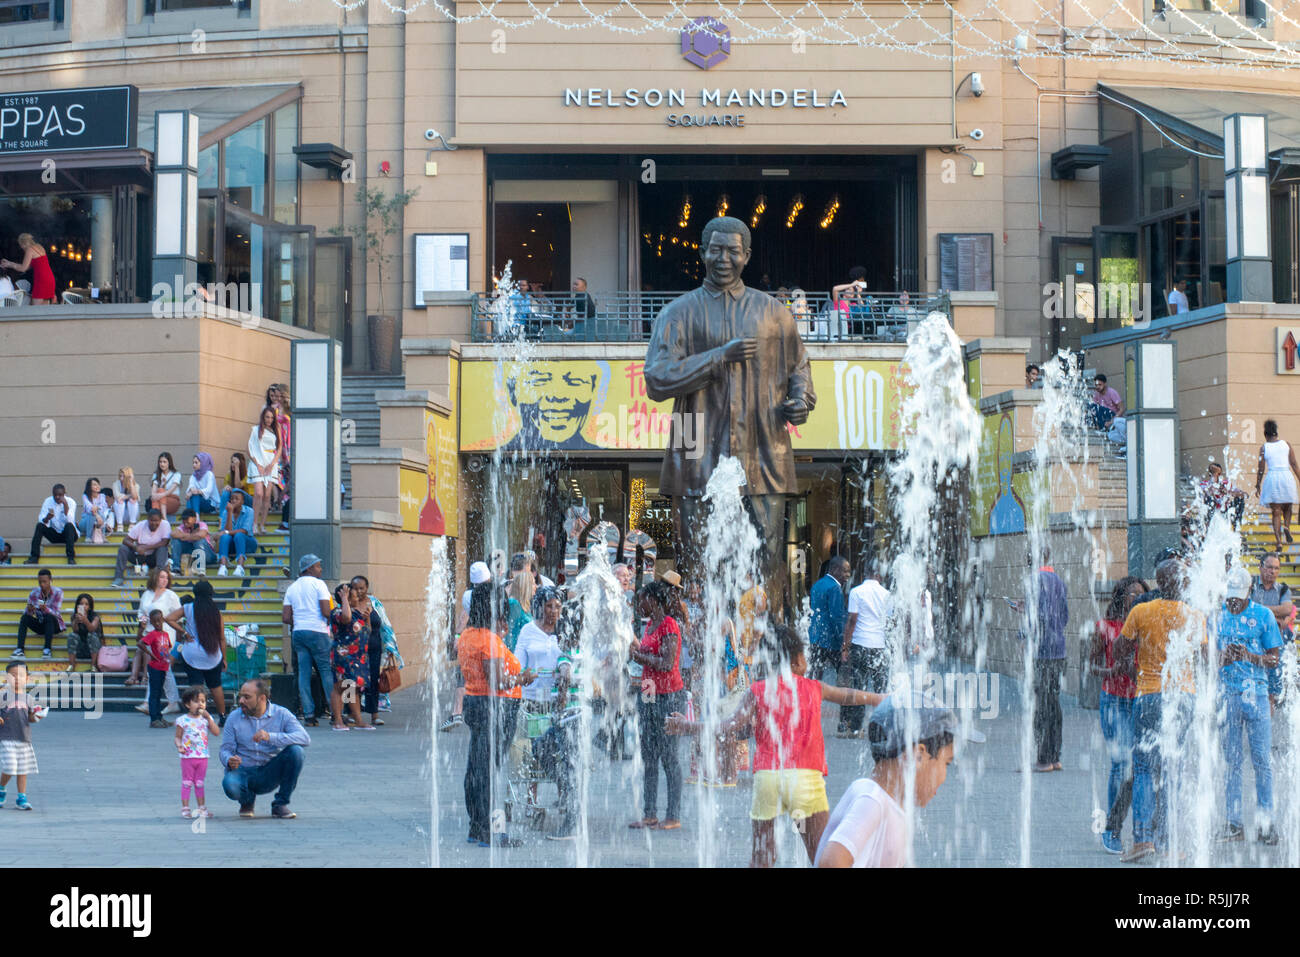 Johannesburg, South Africa, 1st December 2018. Children play in the fountain near the Nelson Mandela statue in Nelson Mandela Square in Sandton. South Africa is currently celebrating the centenary of Madiba's birth. Credit: Eva-Lotta Jansson/Alamy Live News Stock Photo